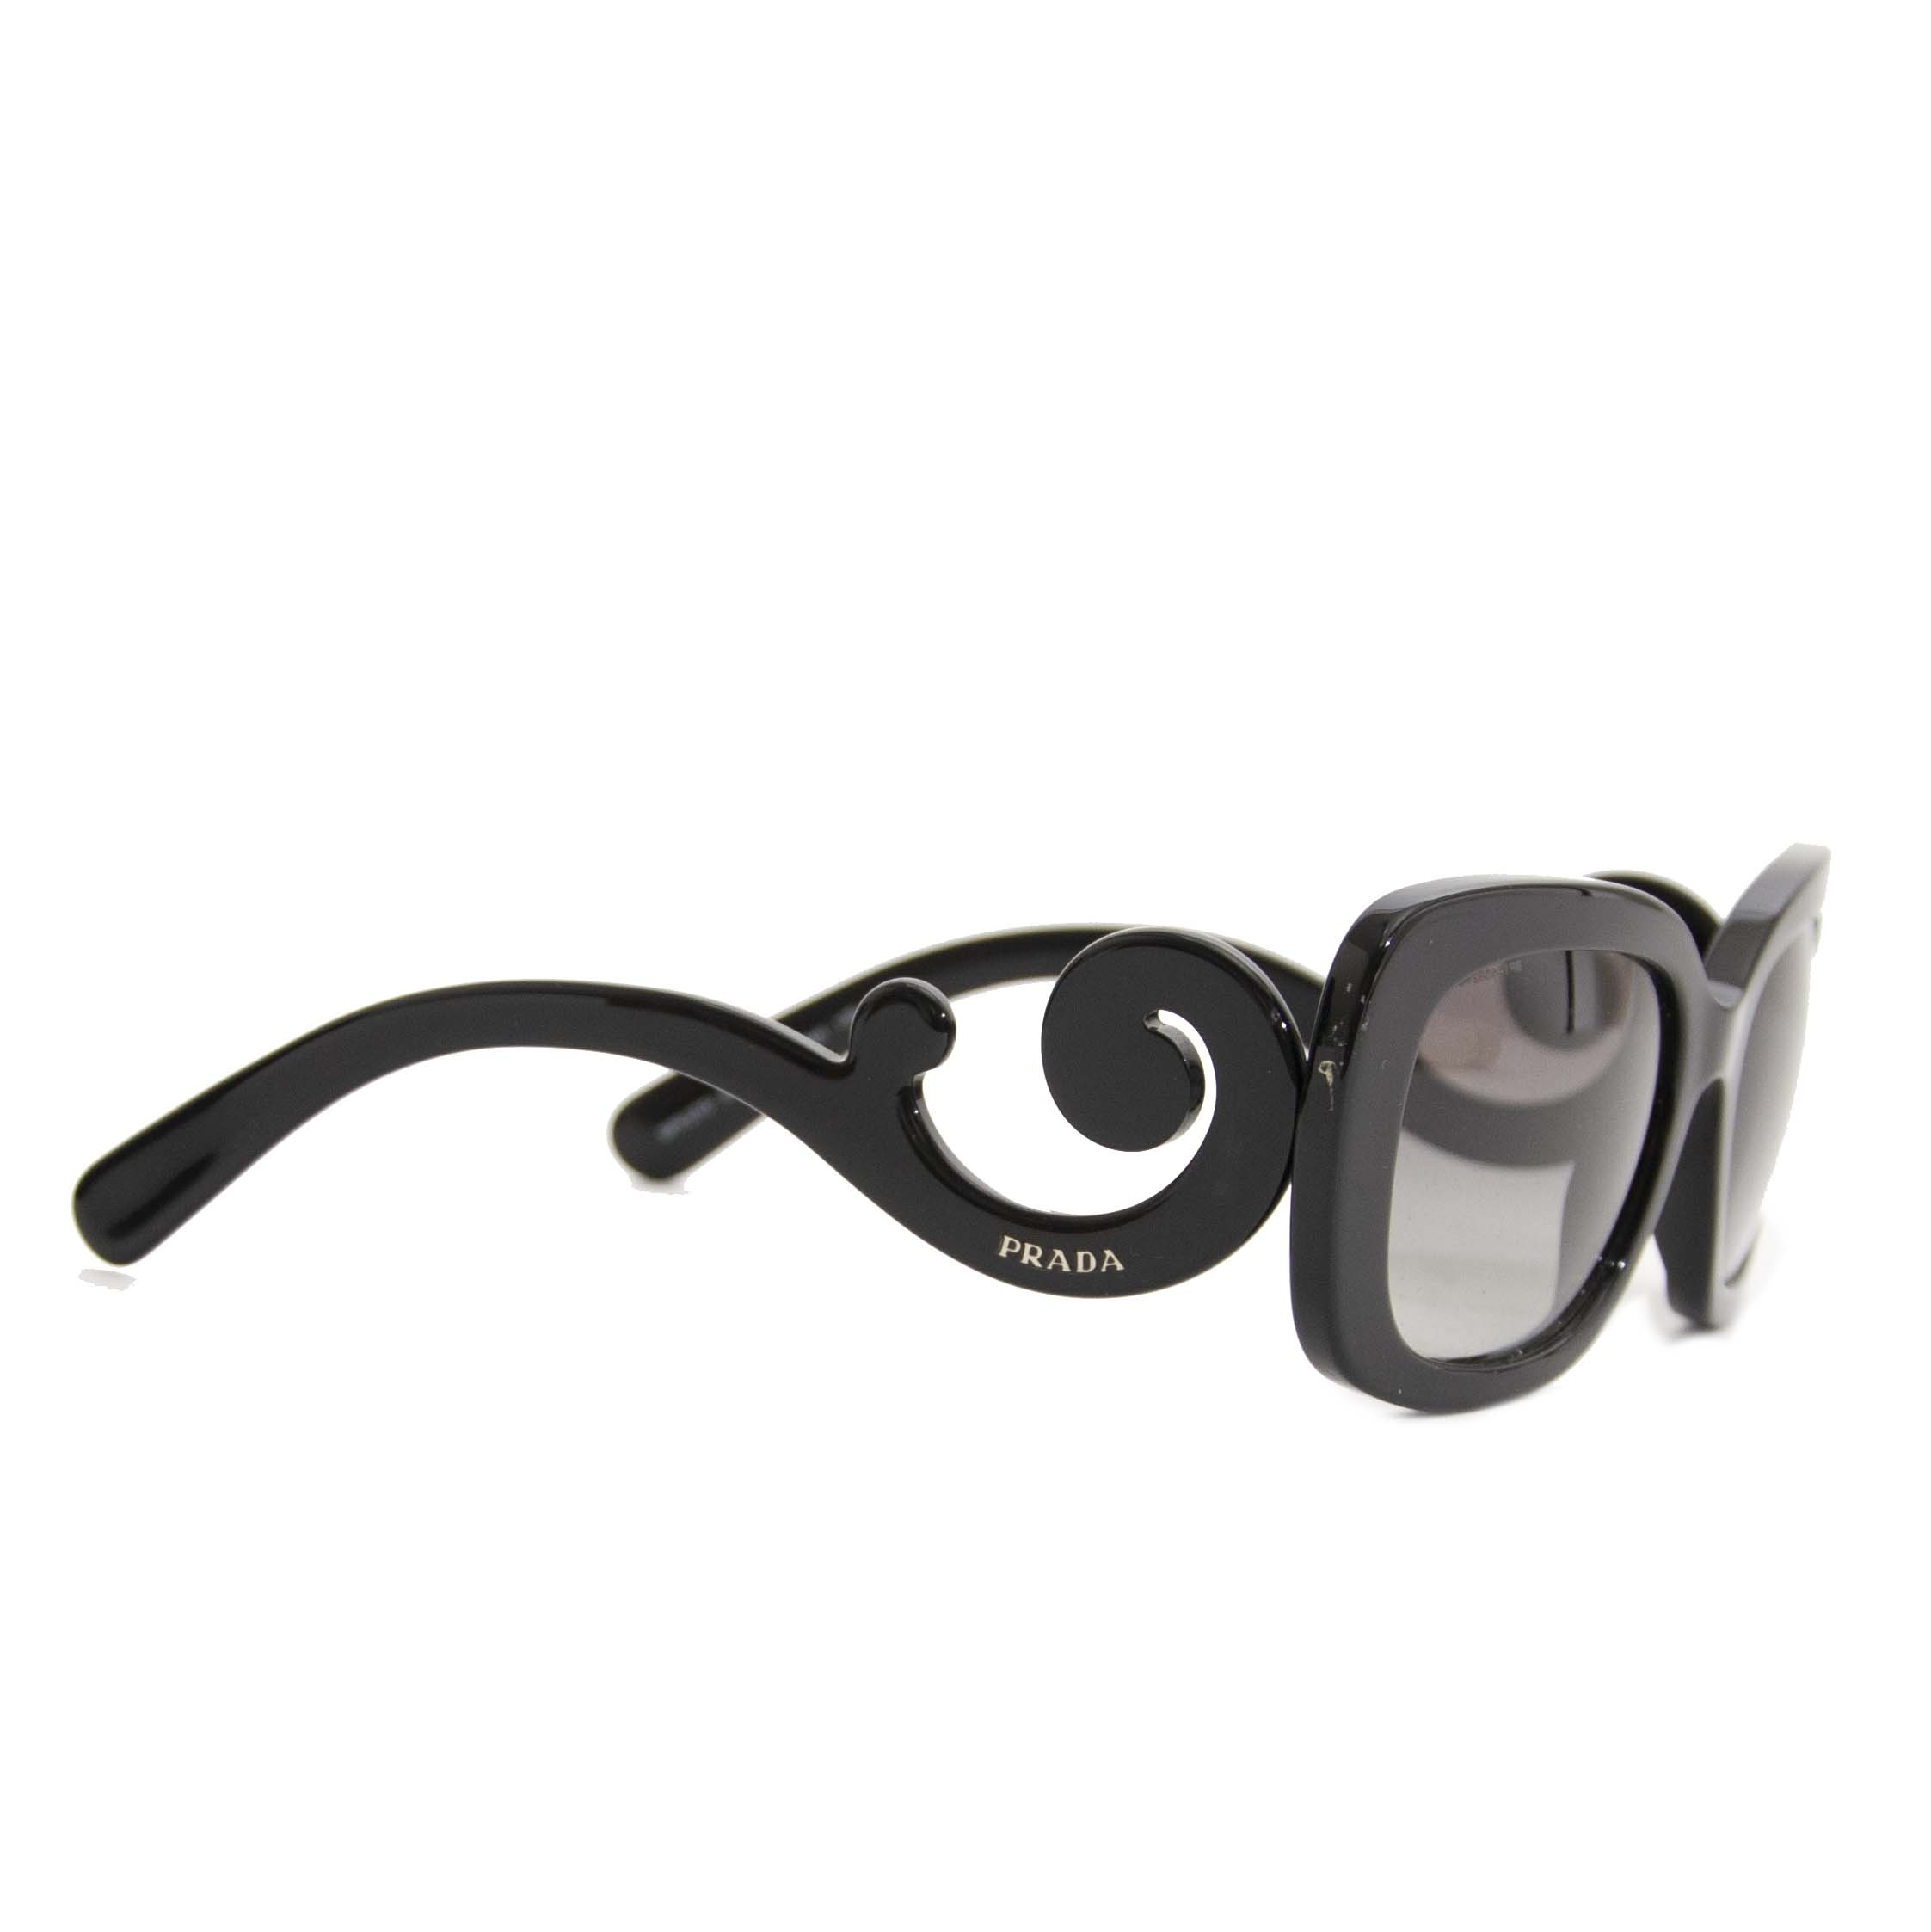 Authentic second hand Prada Minimal Baroque Sunglasses Black buy online webshop LabelLOV